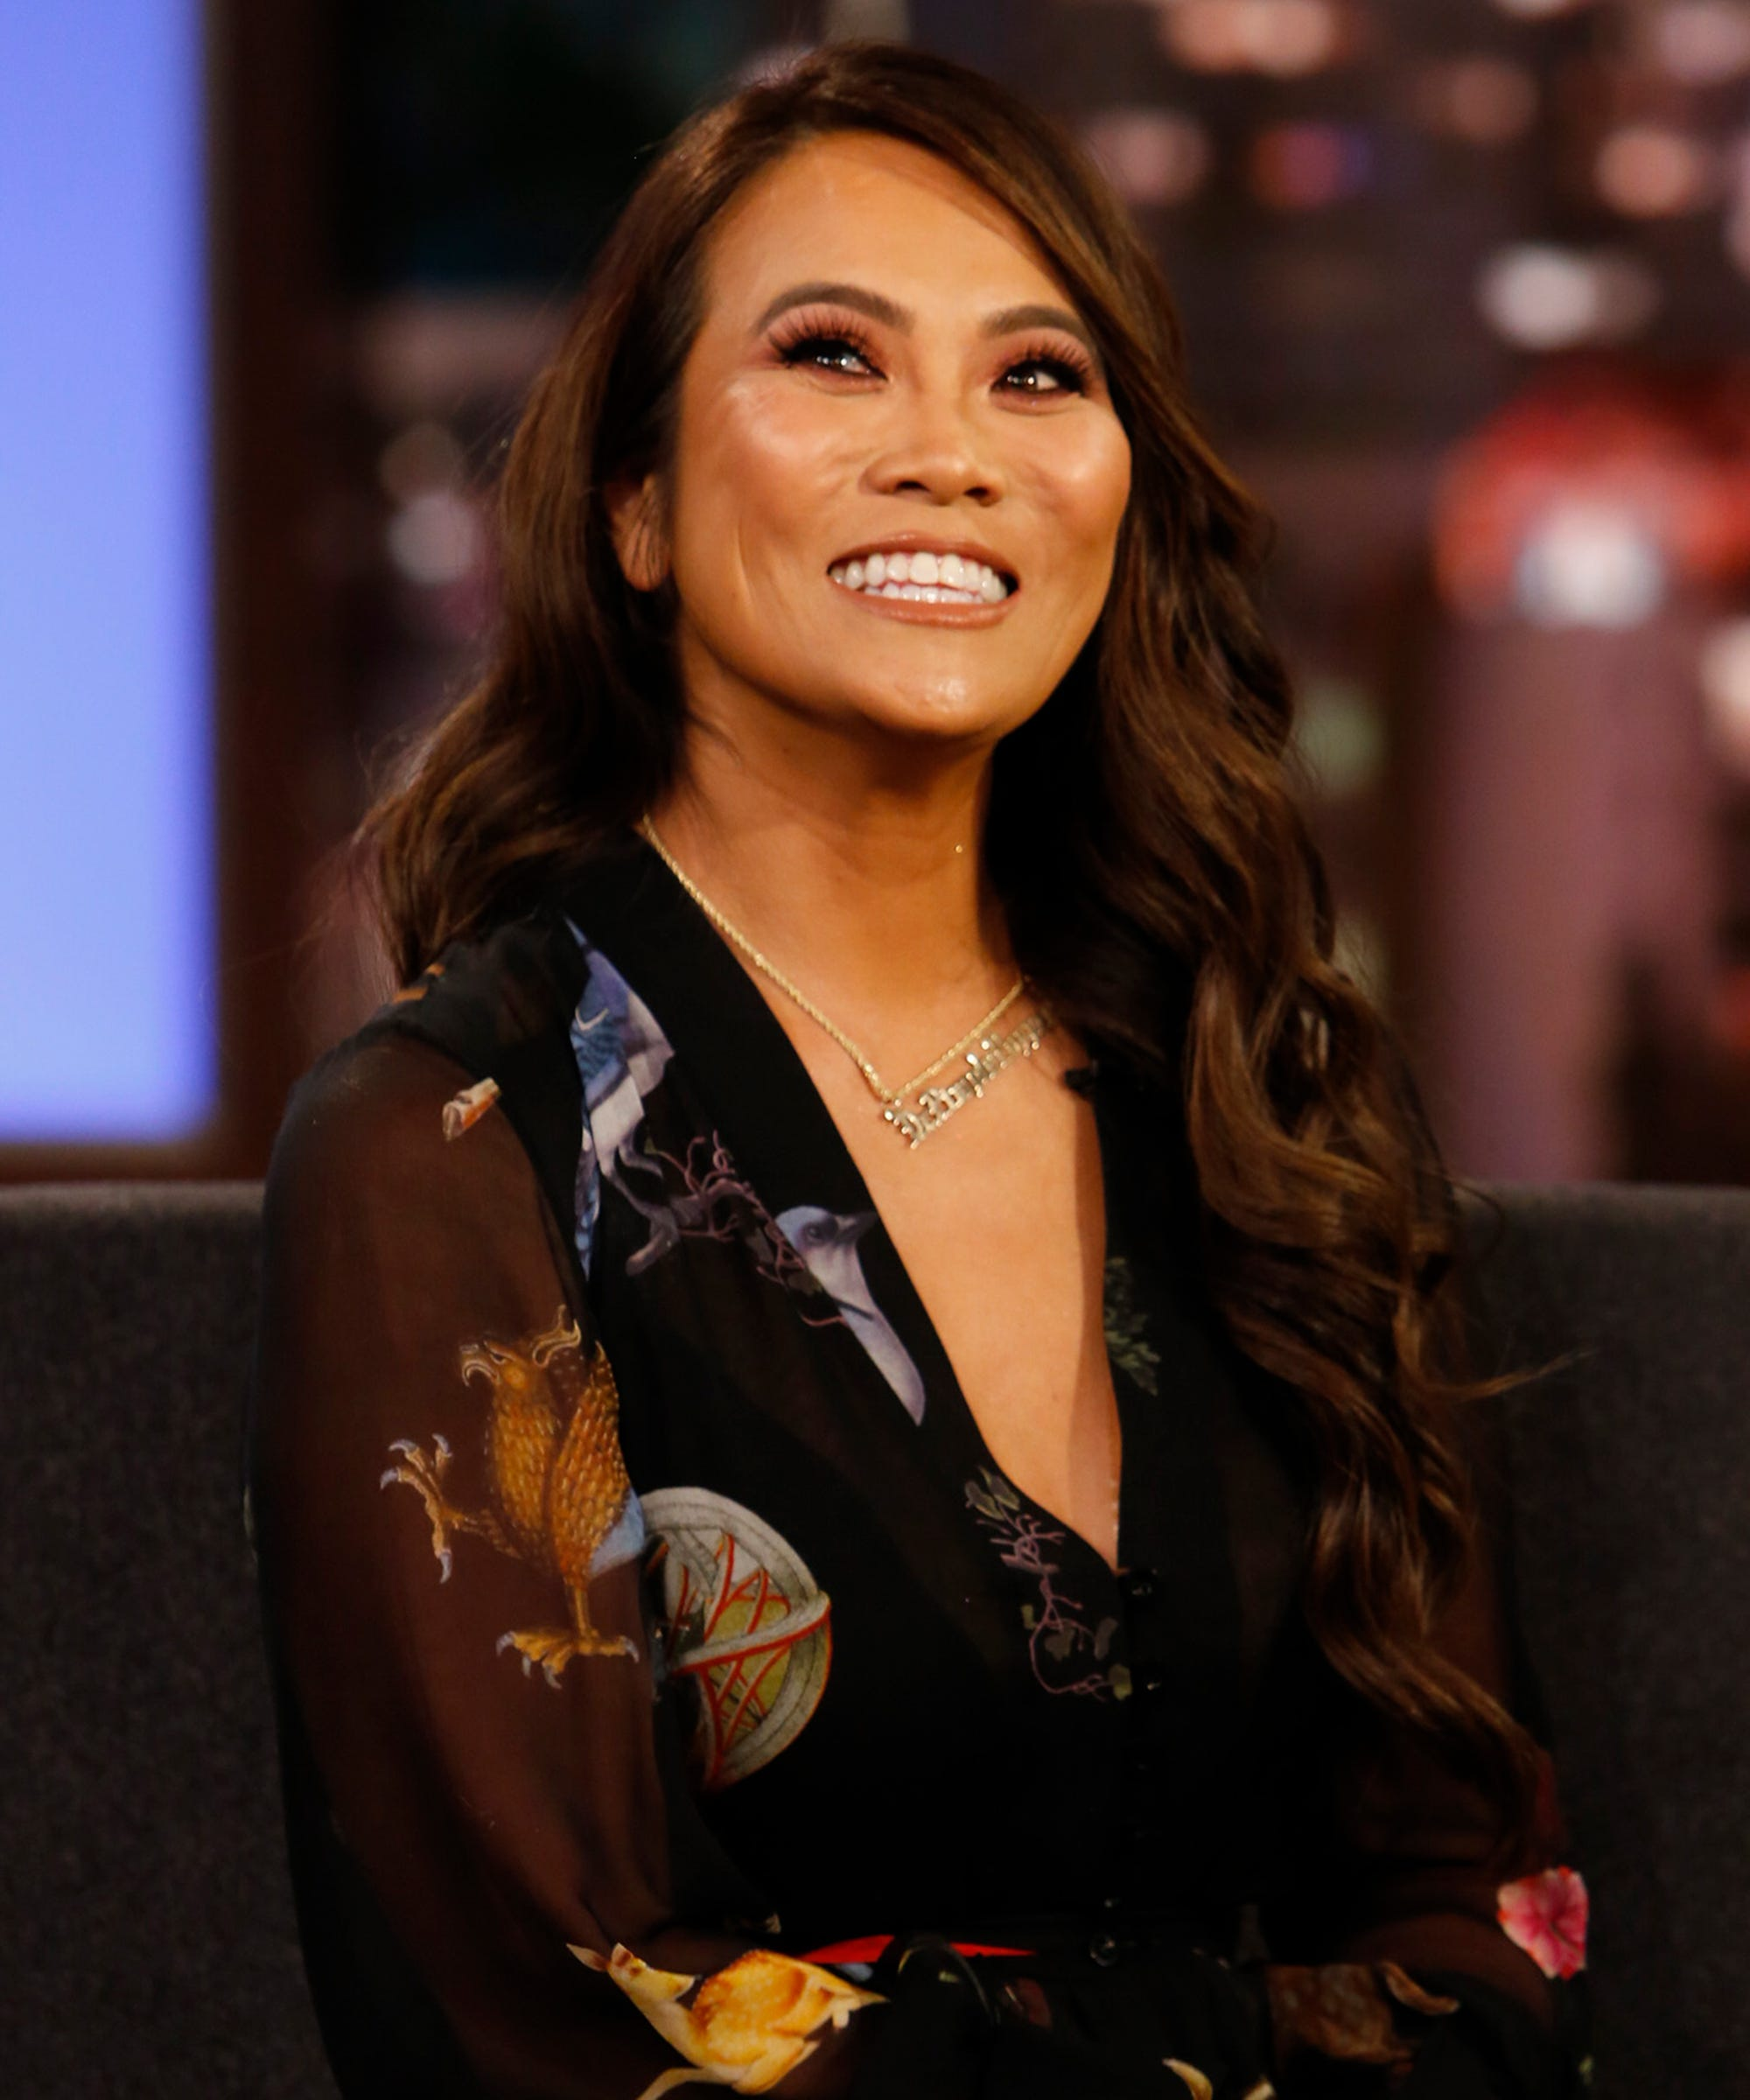 Dr Pimple Popper Season 2 Episode 3 Recap: Last Unicorn